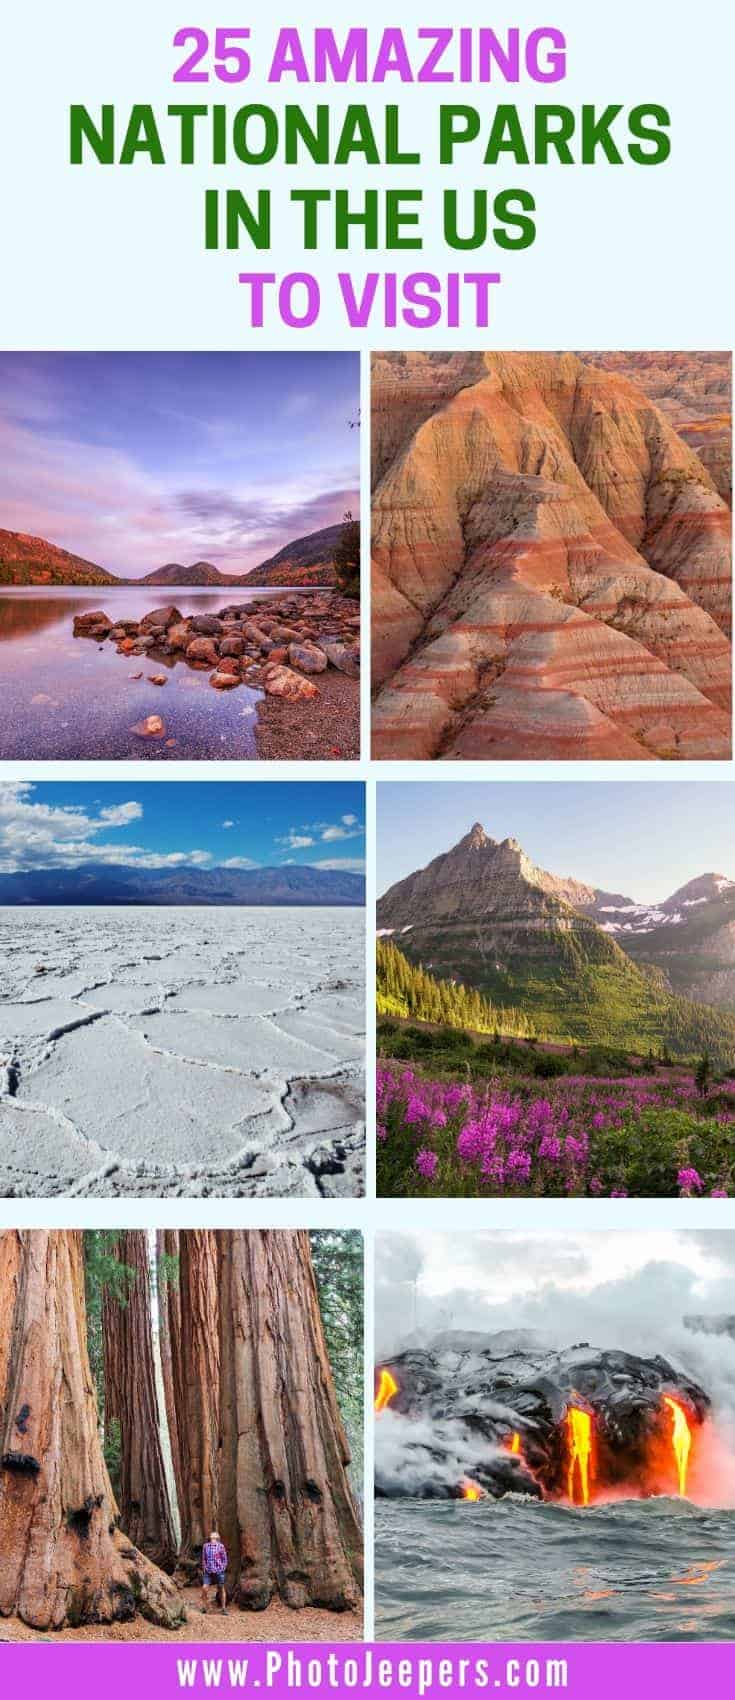 25 amazing national parks to visit